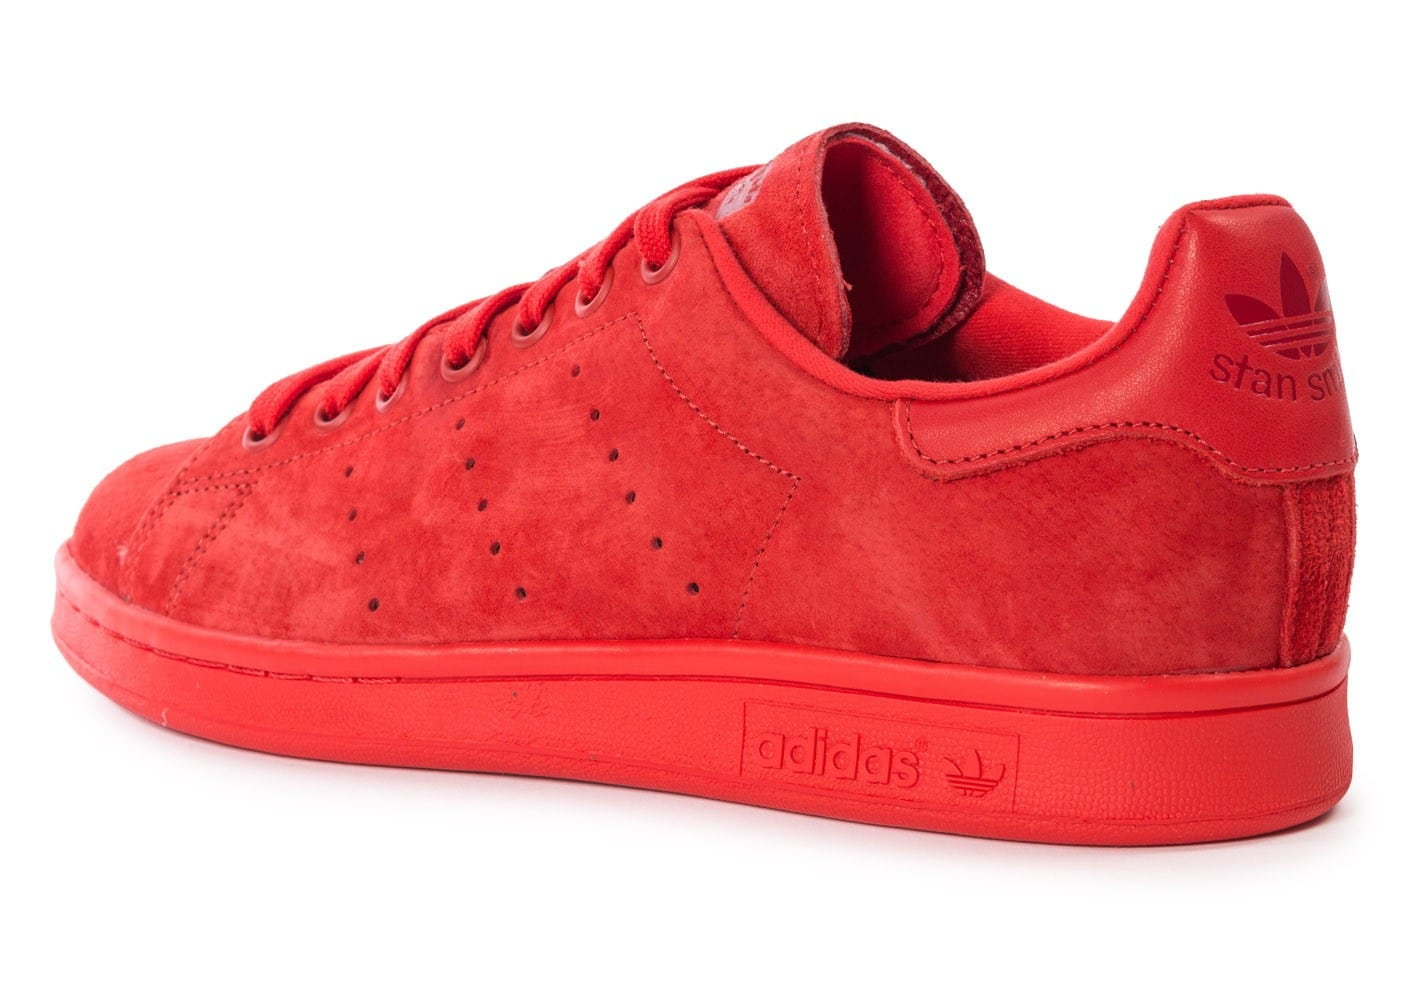 adidas Stan Smith Suede monochrome rouge Chaussures